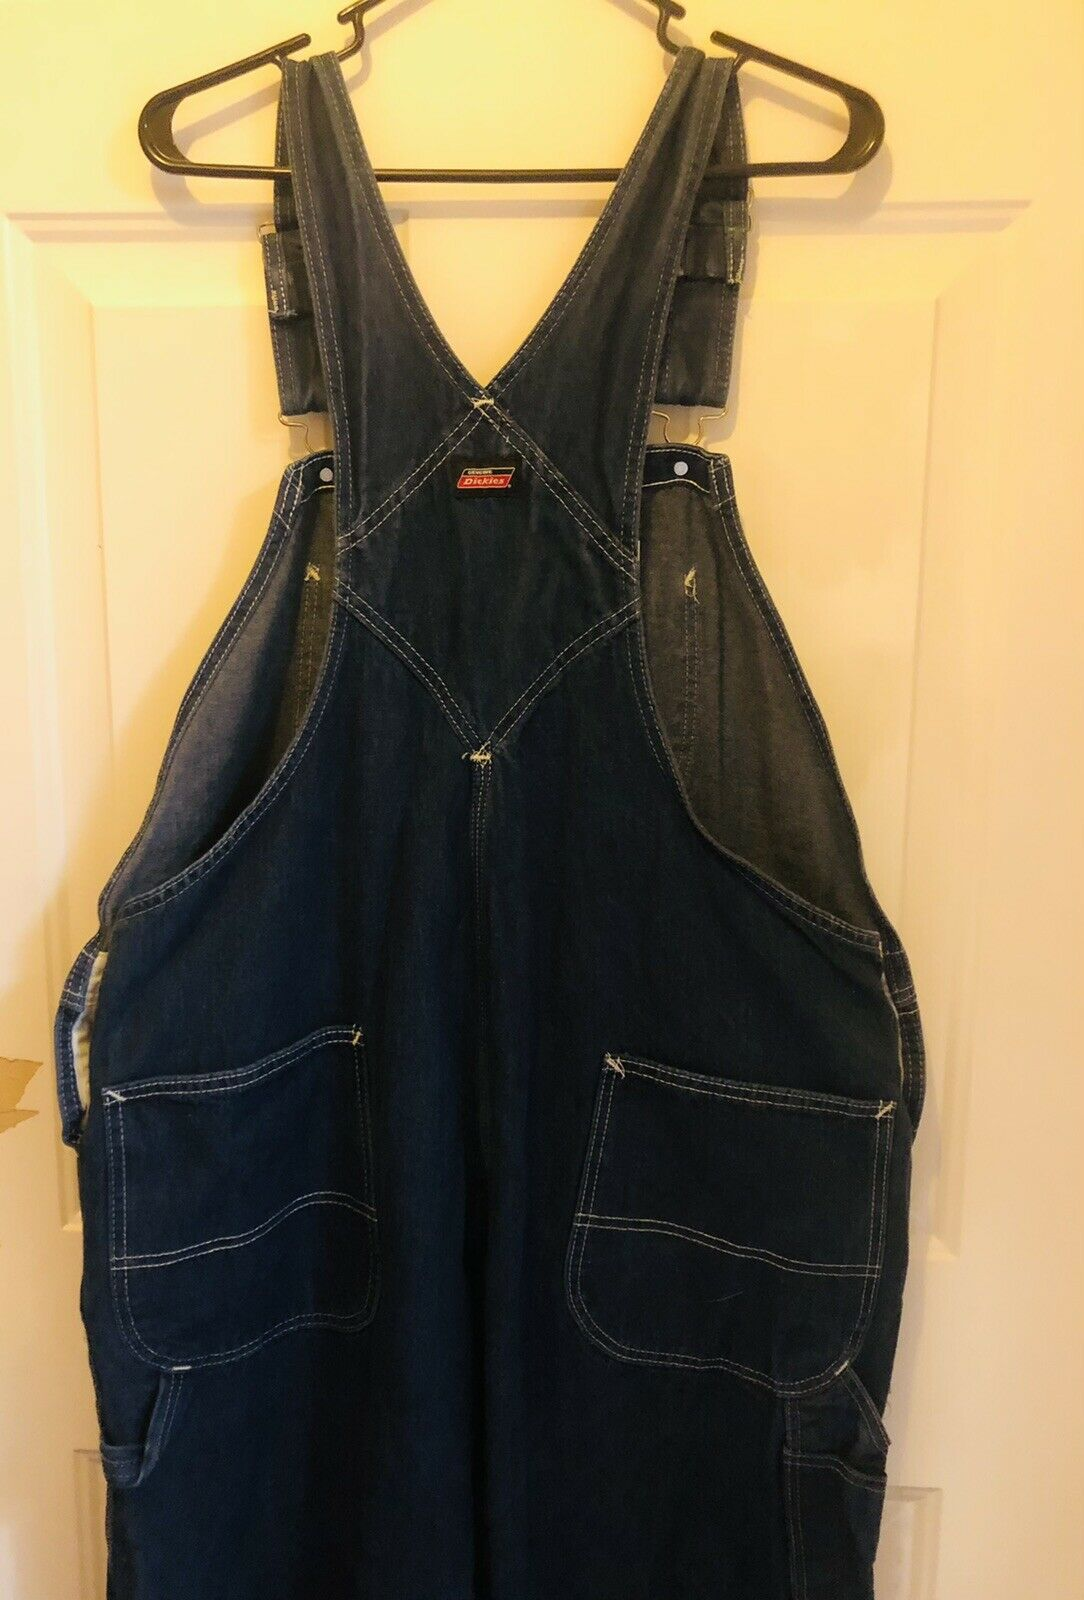 Dickies Jeans  Bib Overalls Size 42x32 - image 2